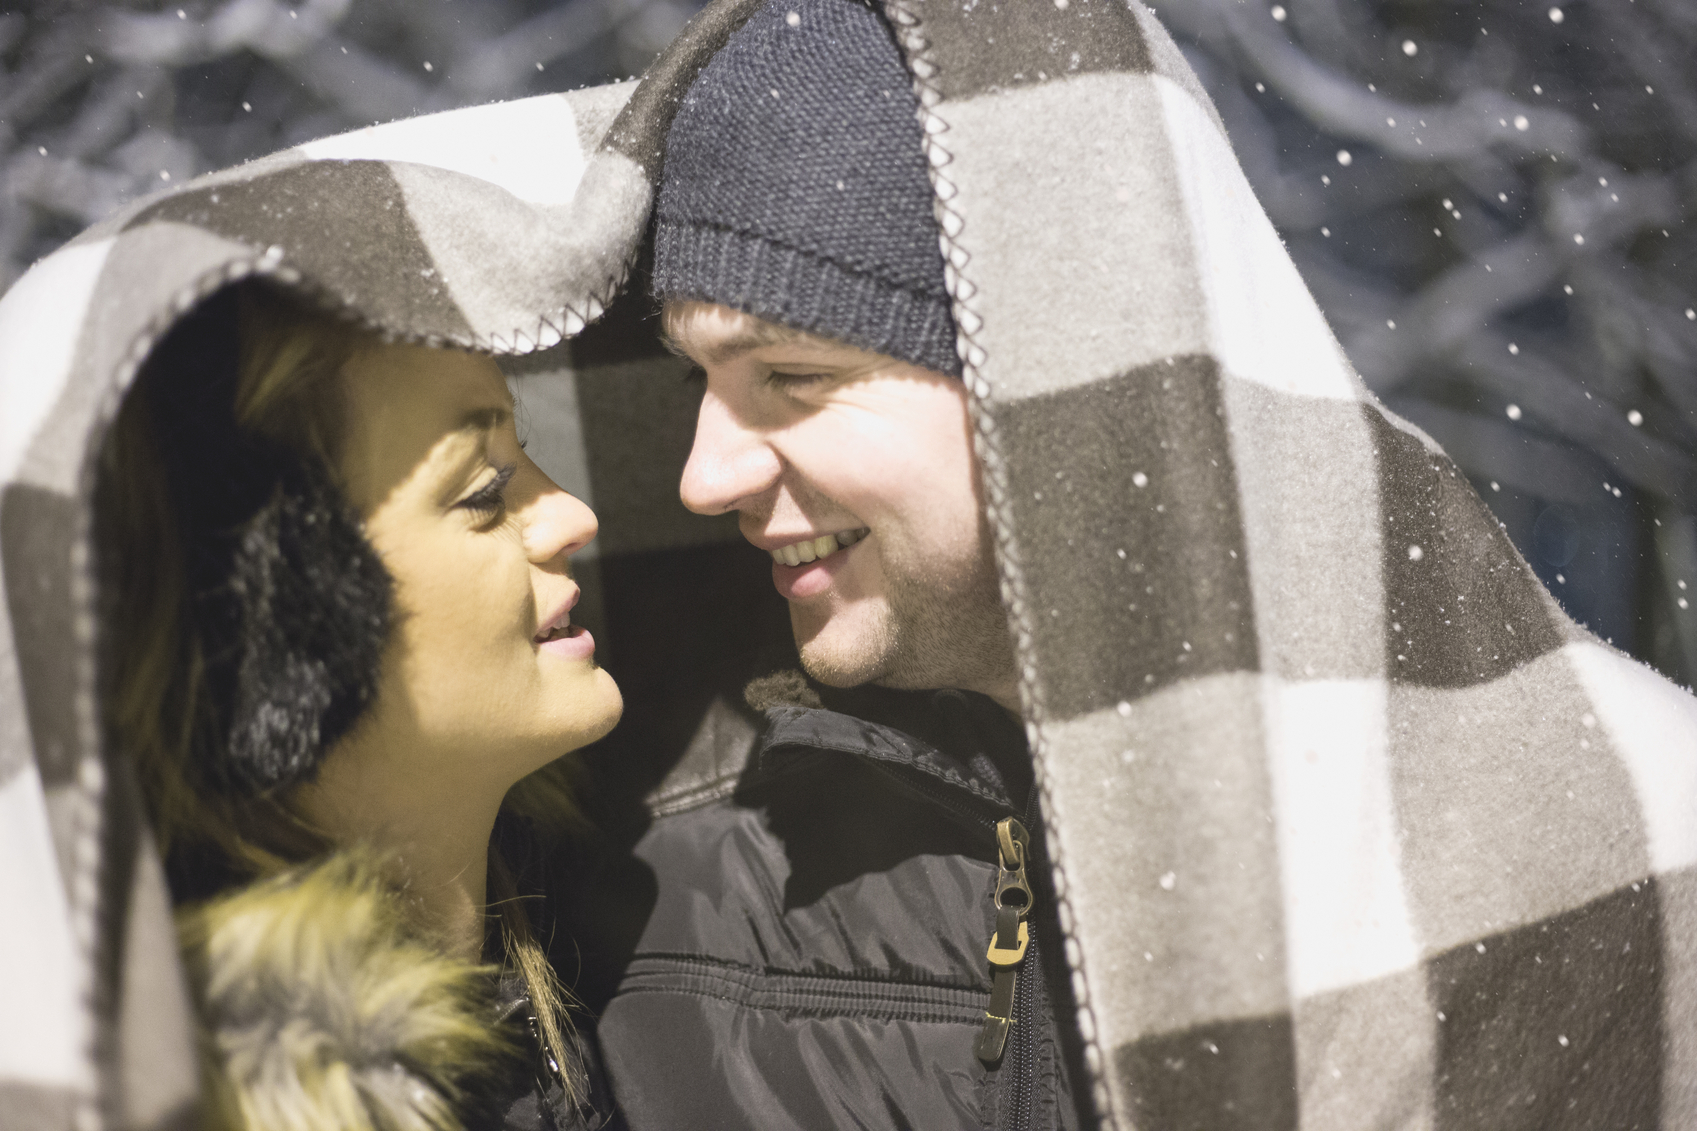 Loving couple kissing on a snowy winter night